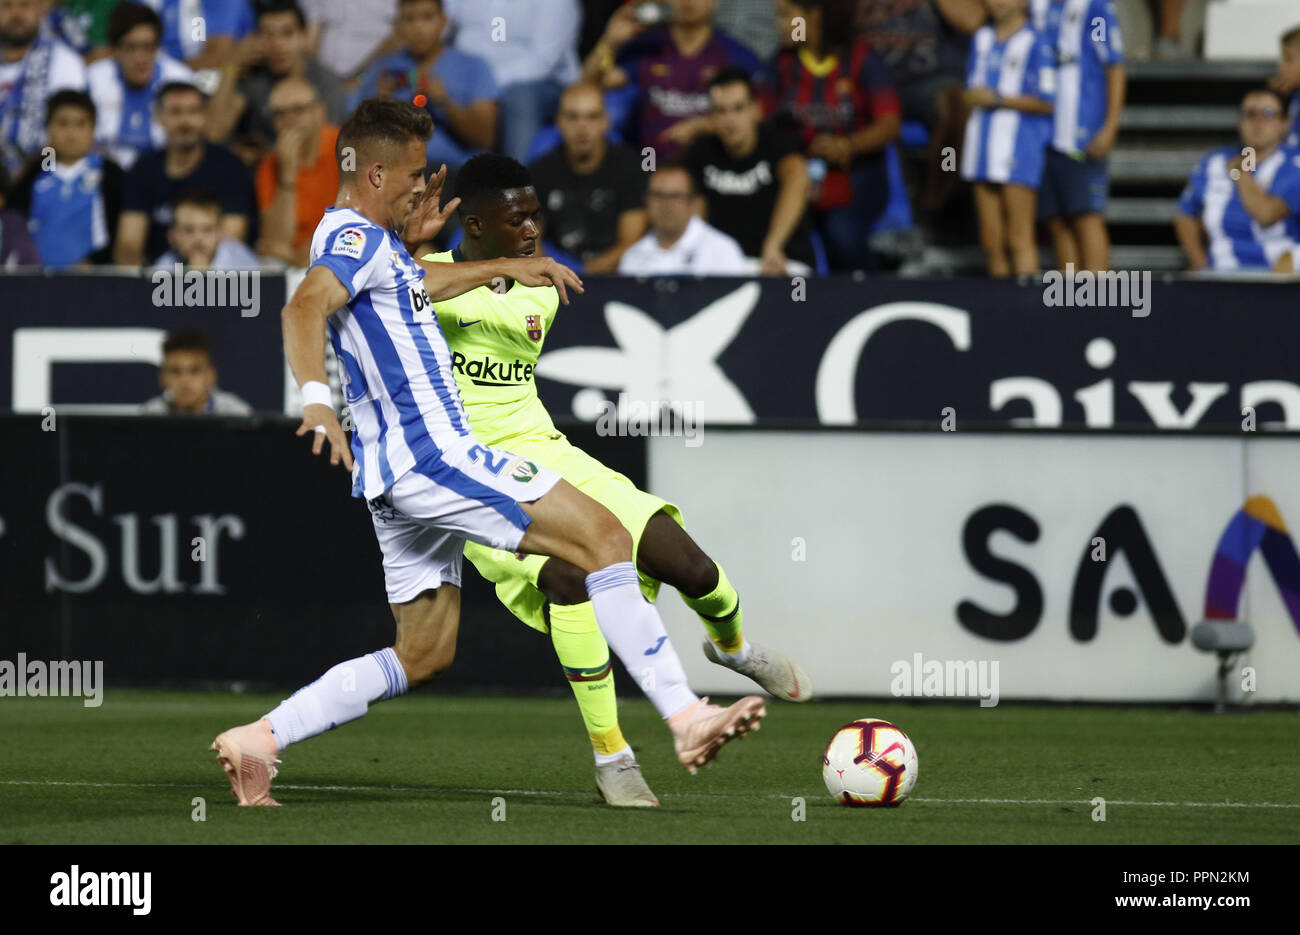 Leganes, Madrid, Spain. 26th Sep, 2018. Ousmane Dembele (FC Barcelona) in action during the game.La Liga match between CD Leganes and FC Barcelona at Butarque Stadium. Credit: Manu Reino/SOPA Images/ZUMA Wire/Alamy Live News - Stock Image